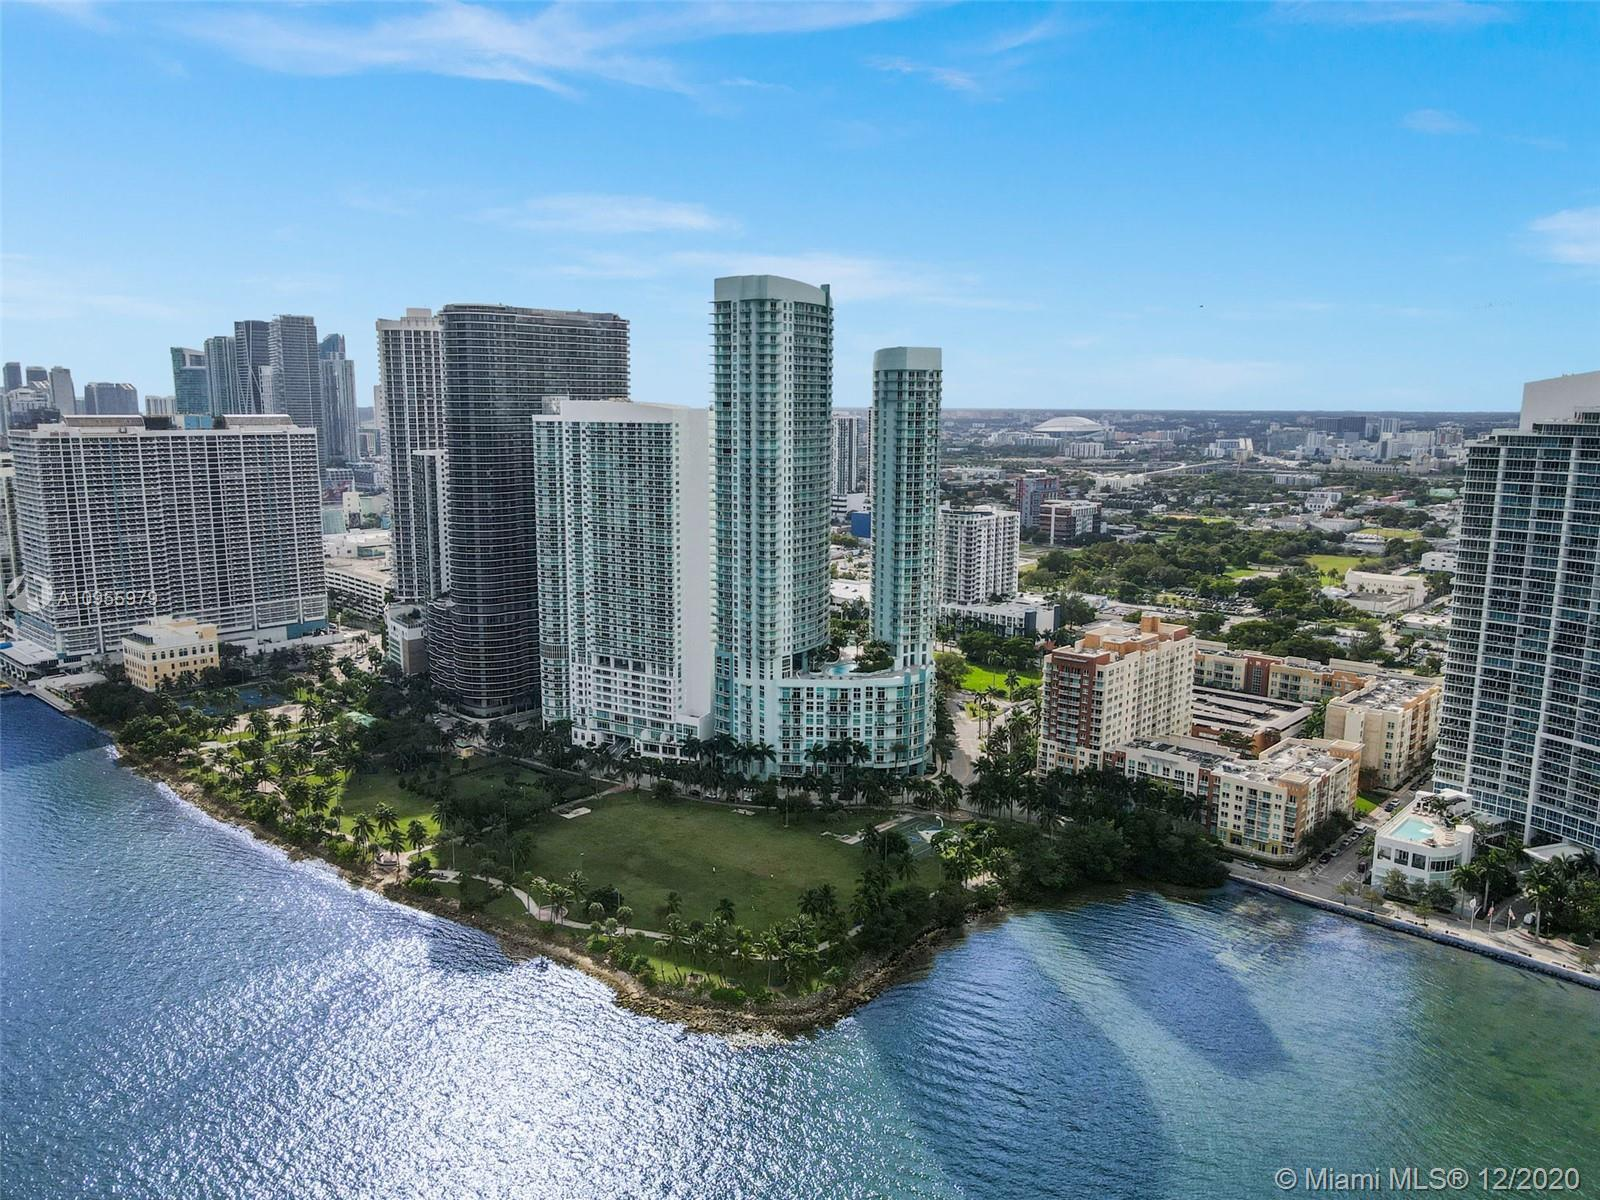 Best PH unit in Edgewater. Direct Bay views as far as the eye can see from this 50th floor PH. Almos